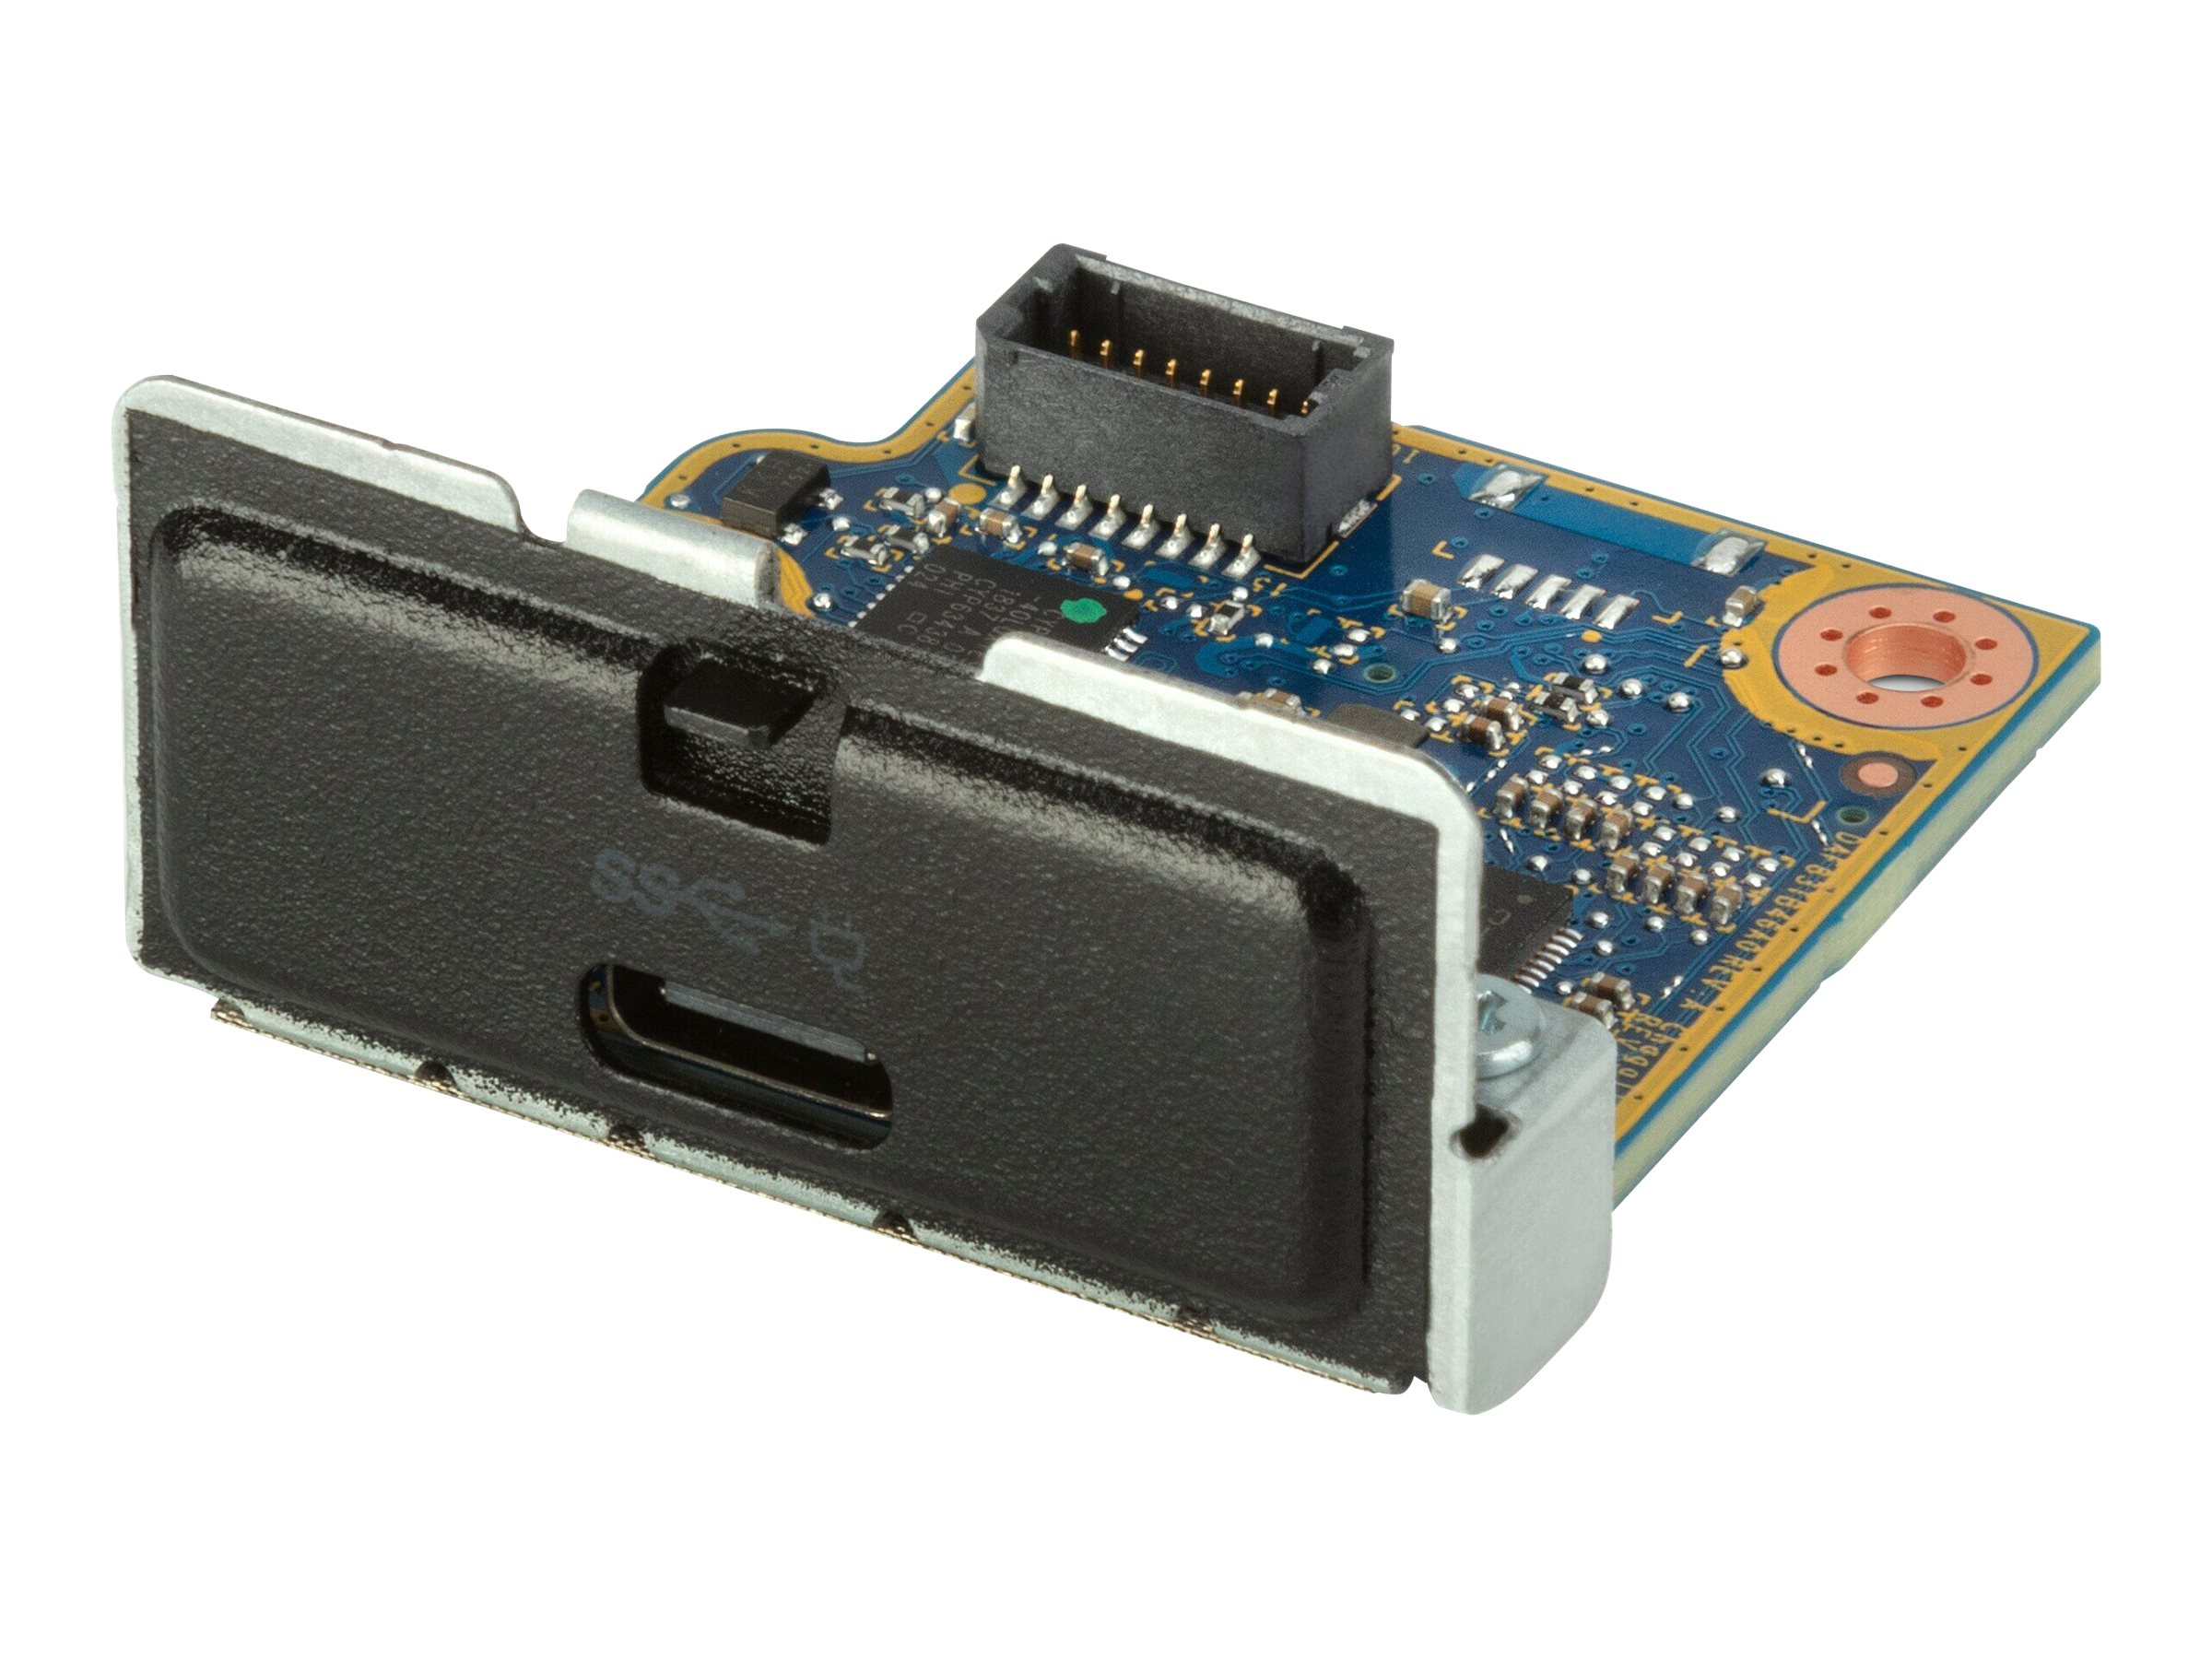 HP - USB-C 3.1 Gen2 port interface board with 100W PD